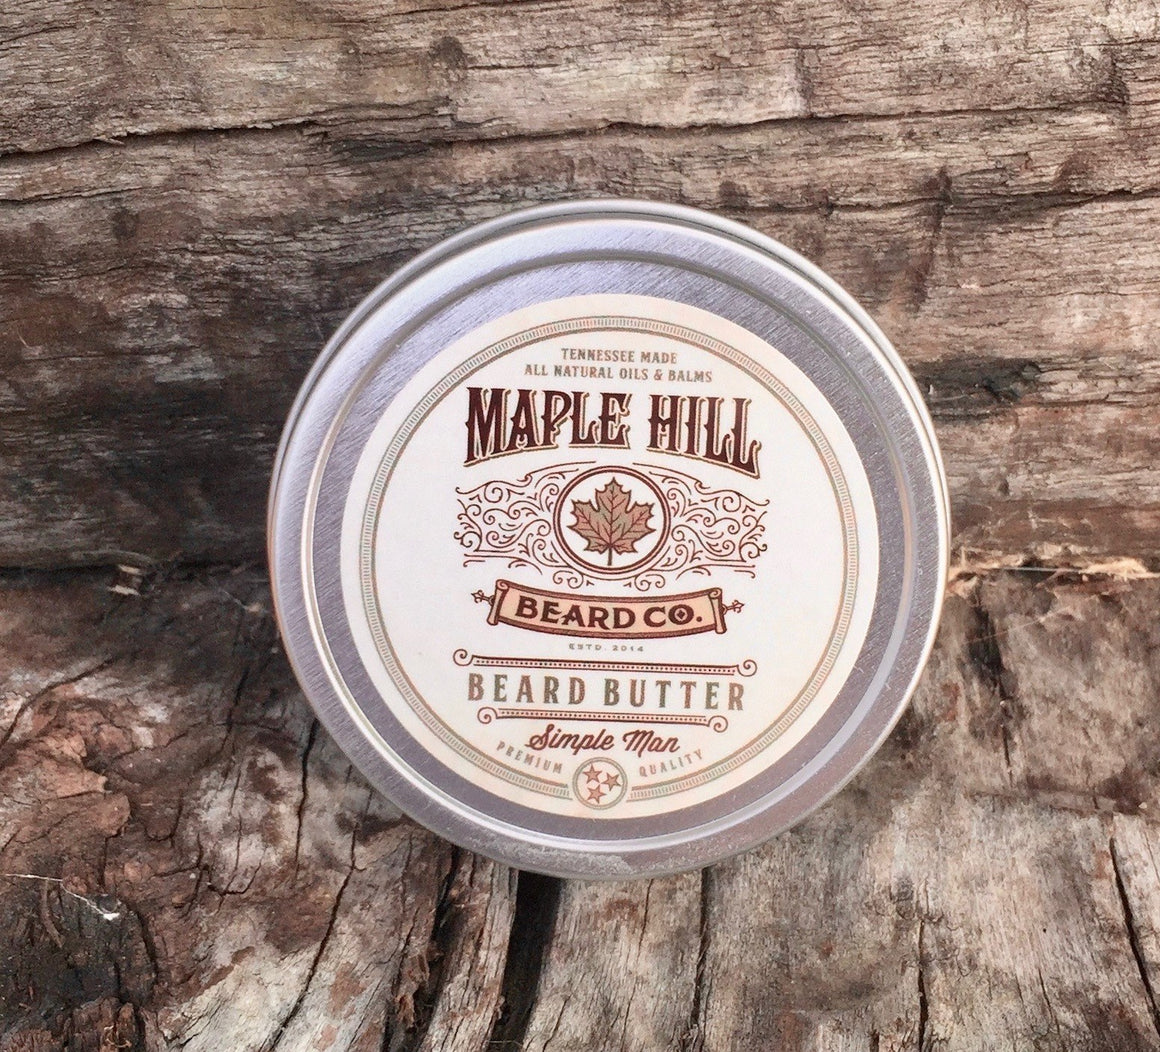 Beard Butter - Simle Man Beard Butter - 1 Fl Oz / 30 Ml